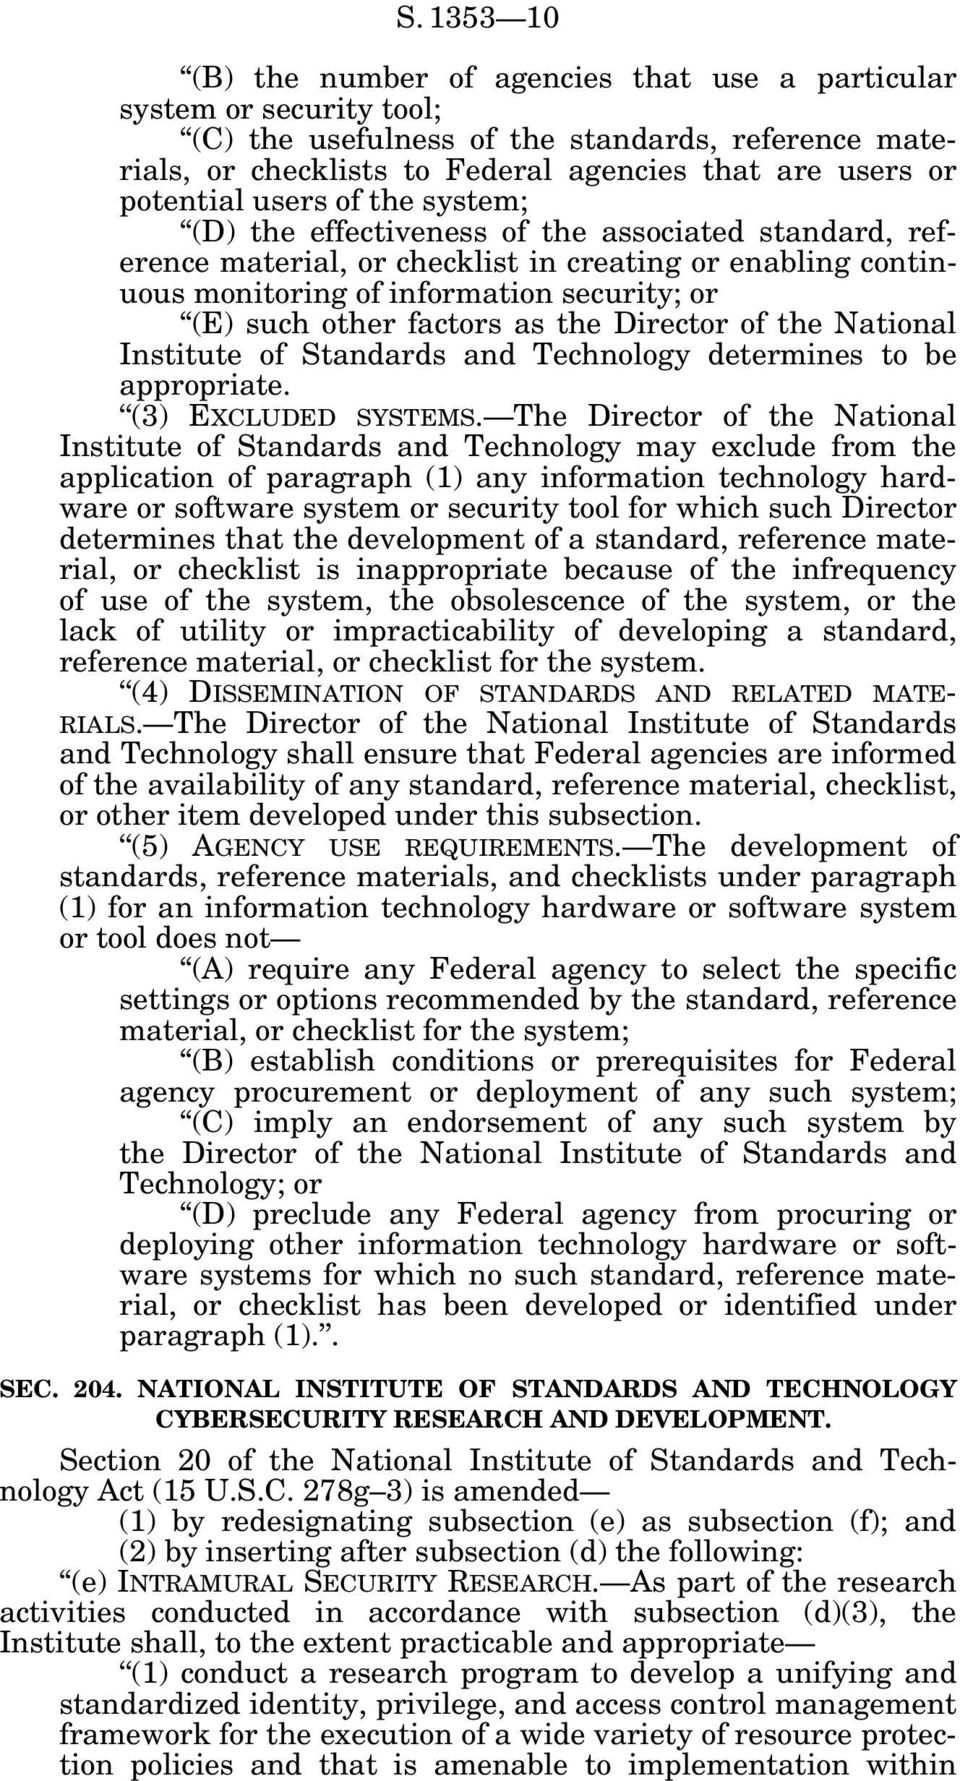 other factors as the Director of the National Institute of Standards and Technology determines to be appropriate. (3) EXCLUDED SYSTEMS.